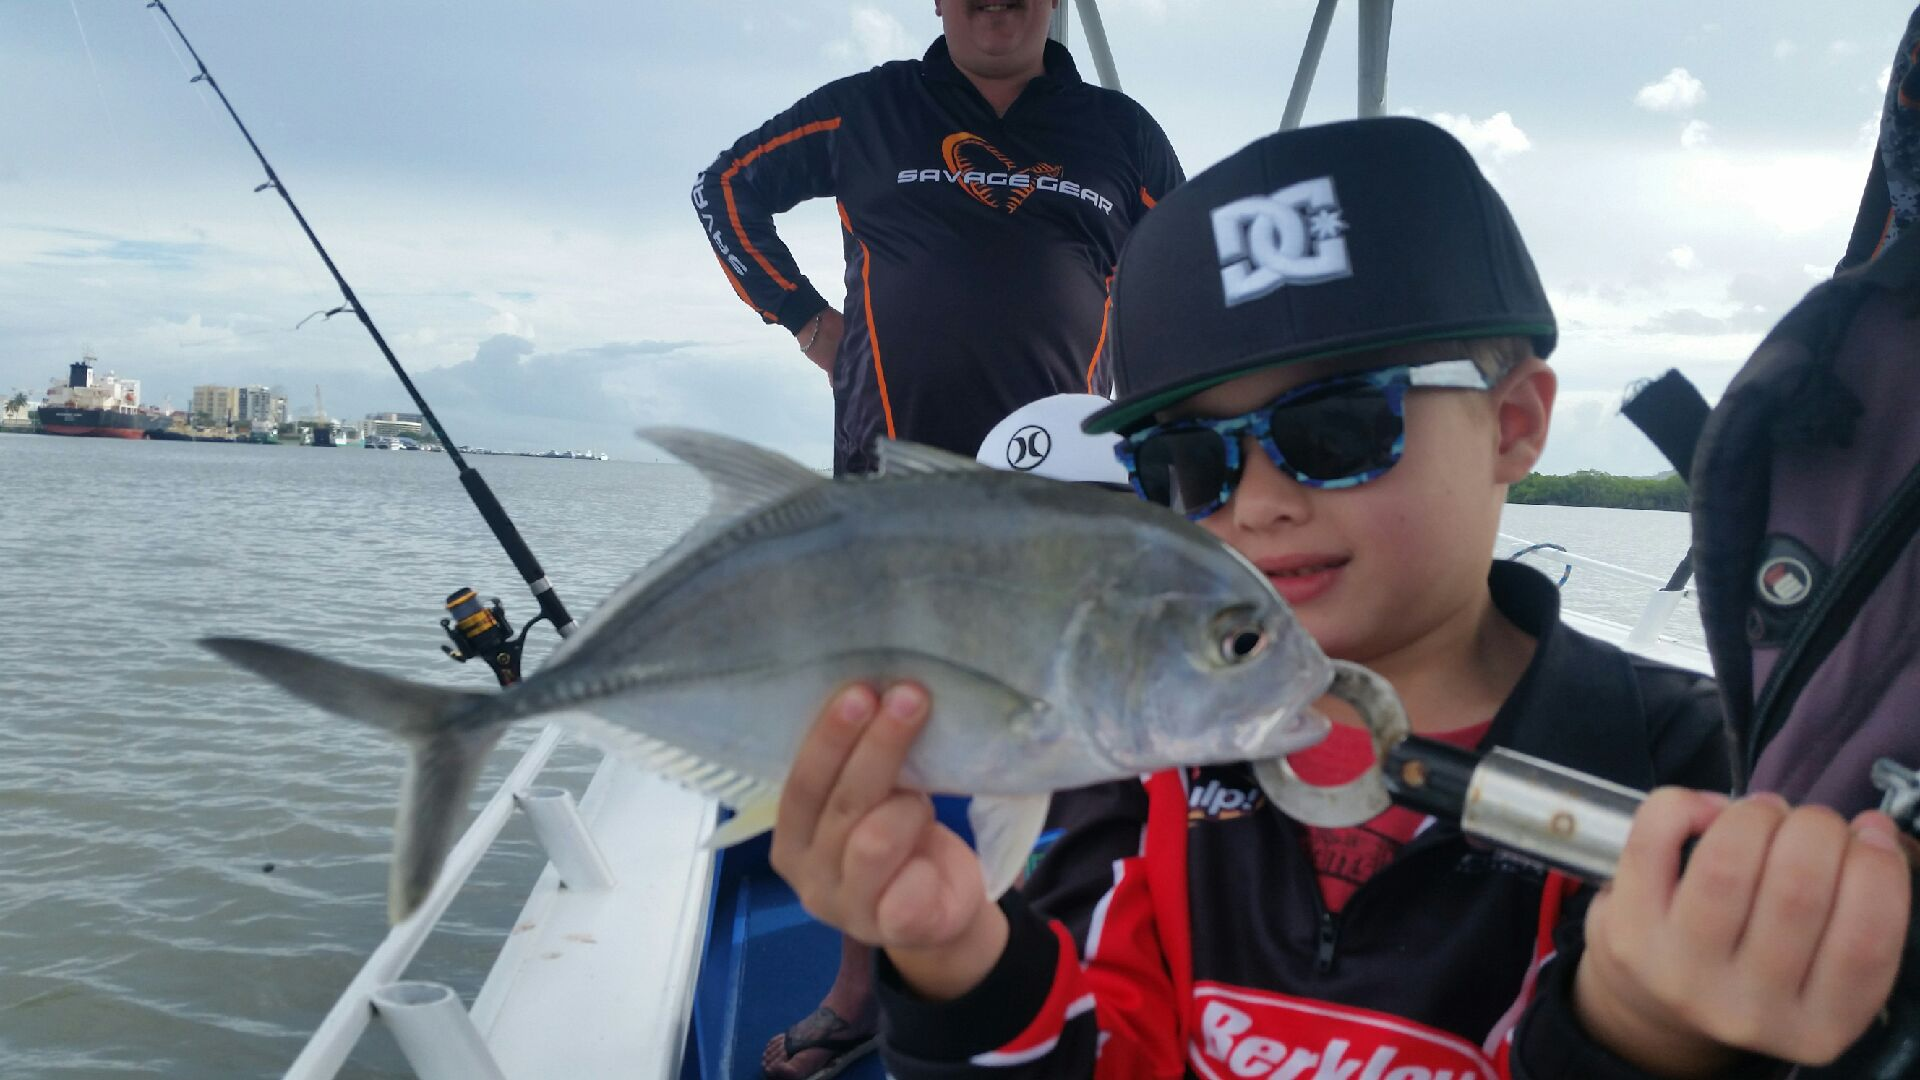 Jack estuary fishing with his family on their Cairns holiday